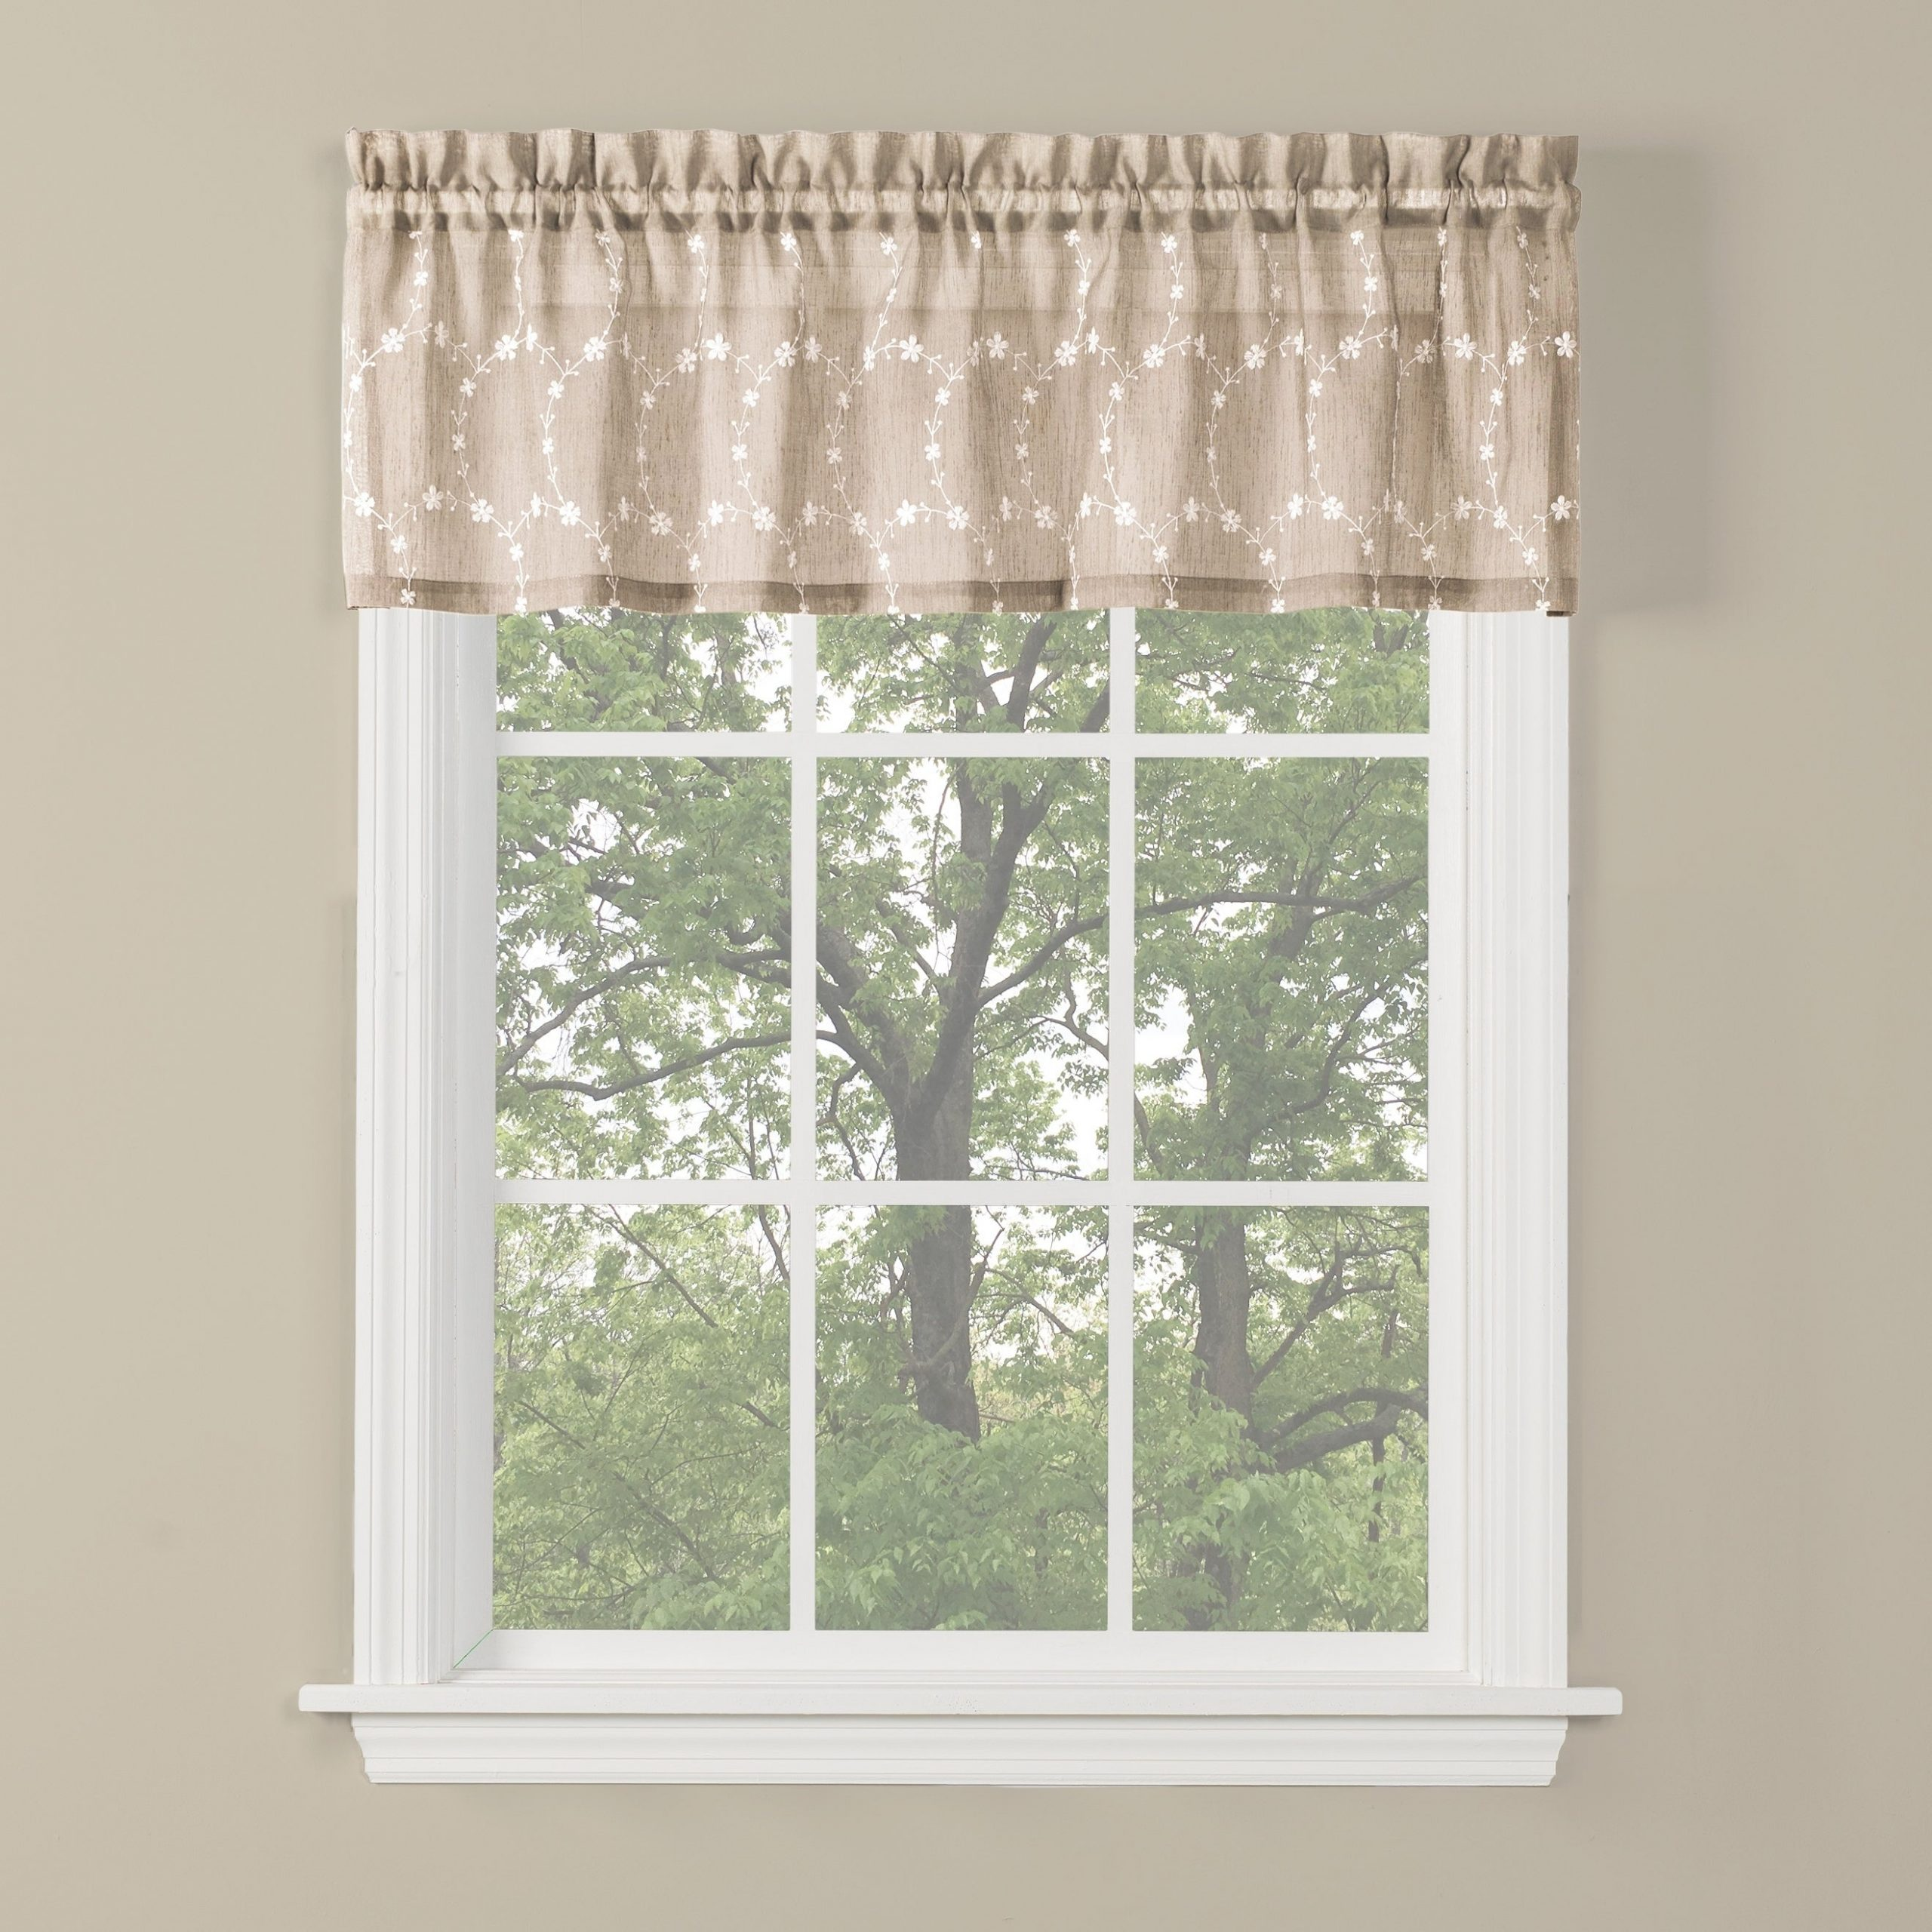 Skl Home Briarwood 13 Inch Valance In Wheat With Dexter 24 Inch Tier Pairs In Green (View 5 of 20)